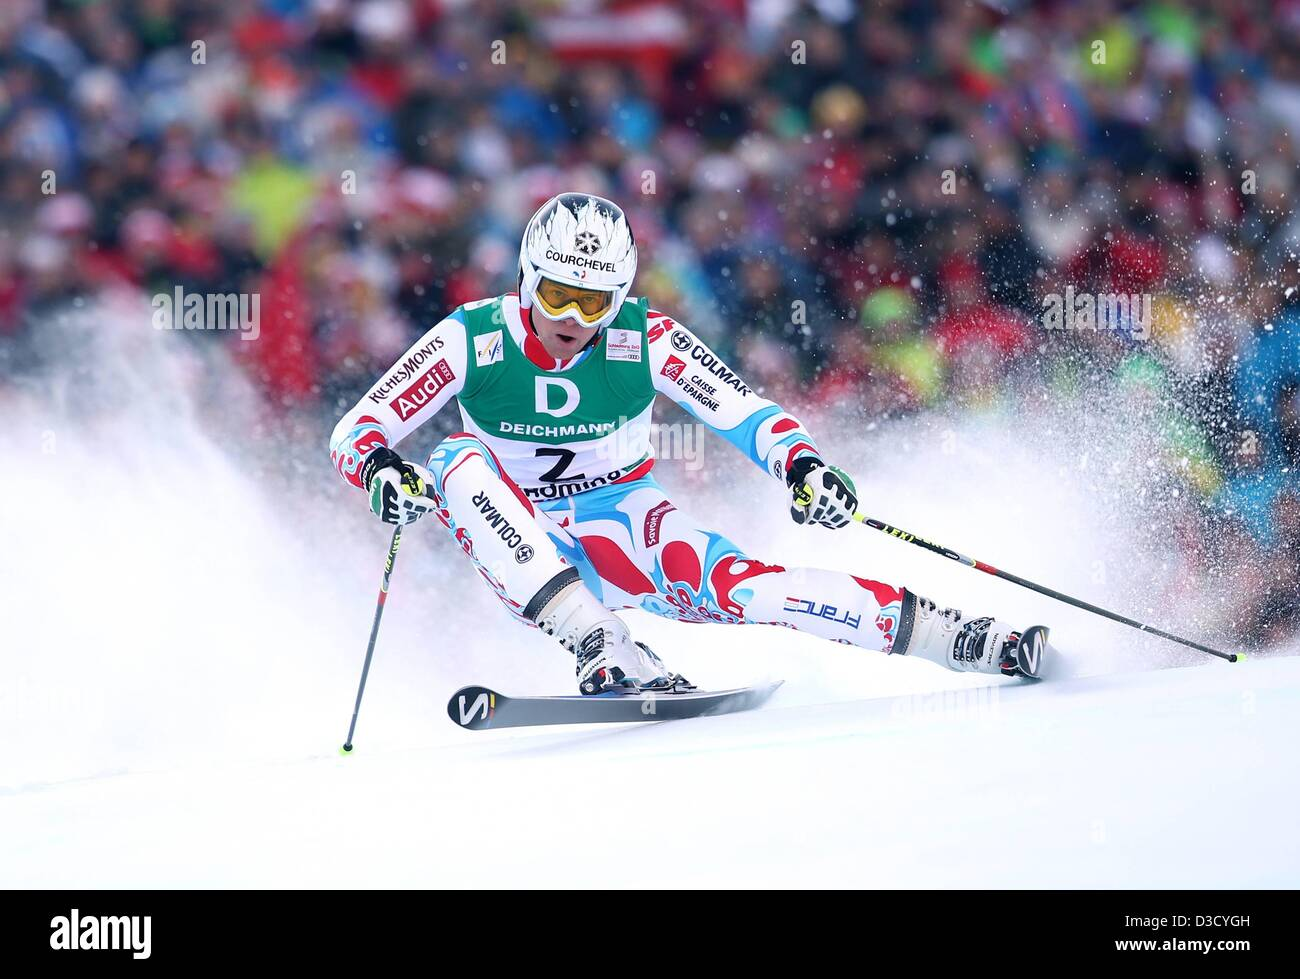 15.02.2013. Schladming, Austria. FIS Alpine Ski World Championships 2013 Giant slalom for men Picture shows Alexis Stock Photo